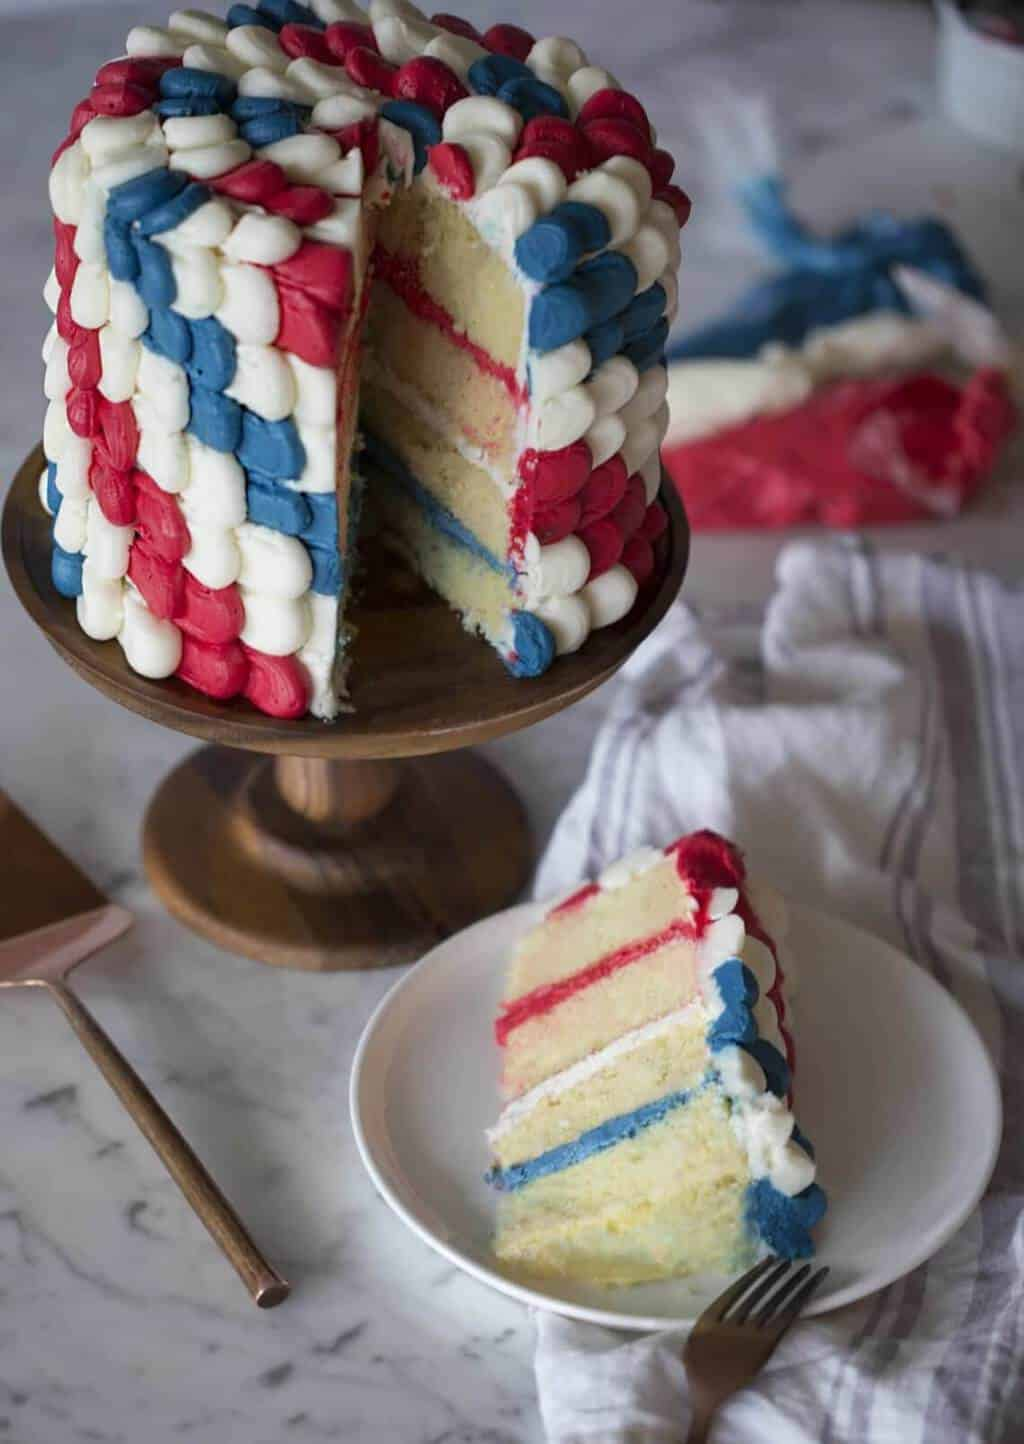 A photo of a red, white and blue cake on a cake stand.